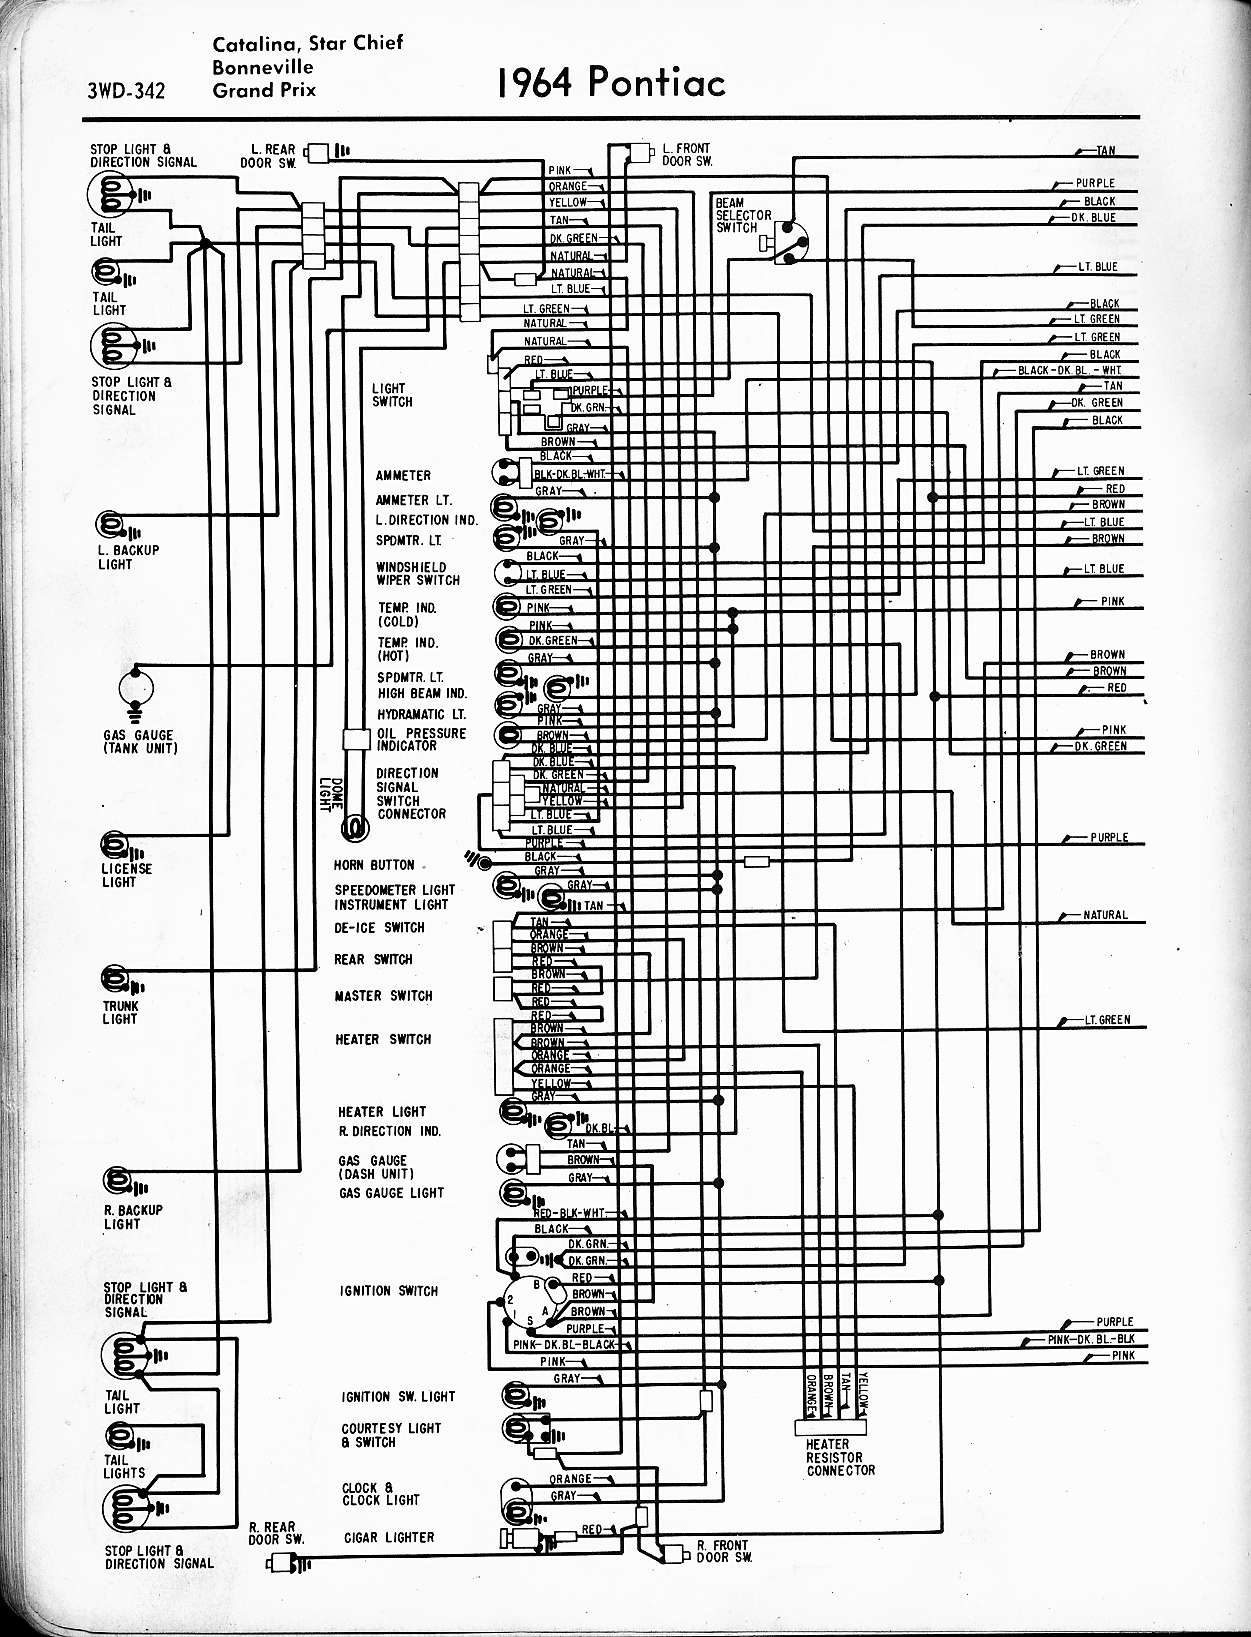 1970 Pontiac Grand Prix Wiring Diagram Just Wiring Data 2006 Grand Prix Headlight  Wiring Diagram 1970 Pontiac Grand Prix Wiring Diagram